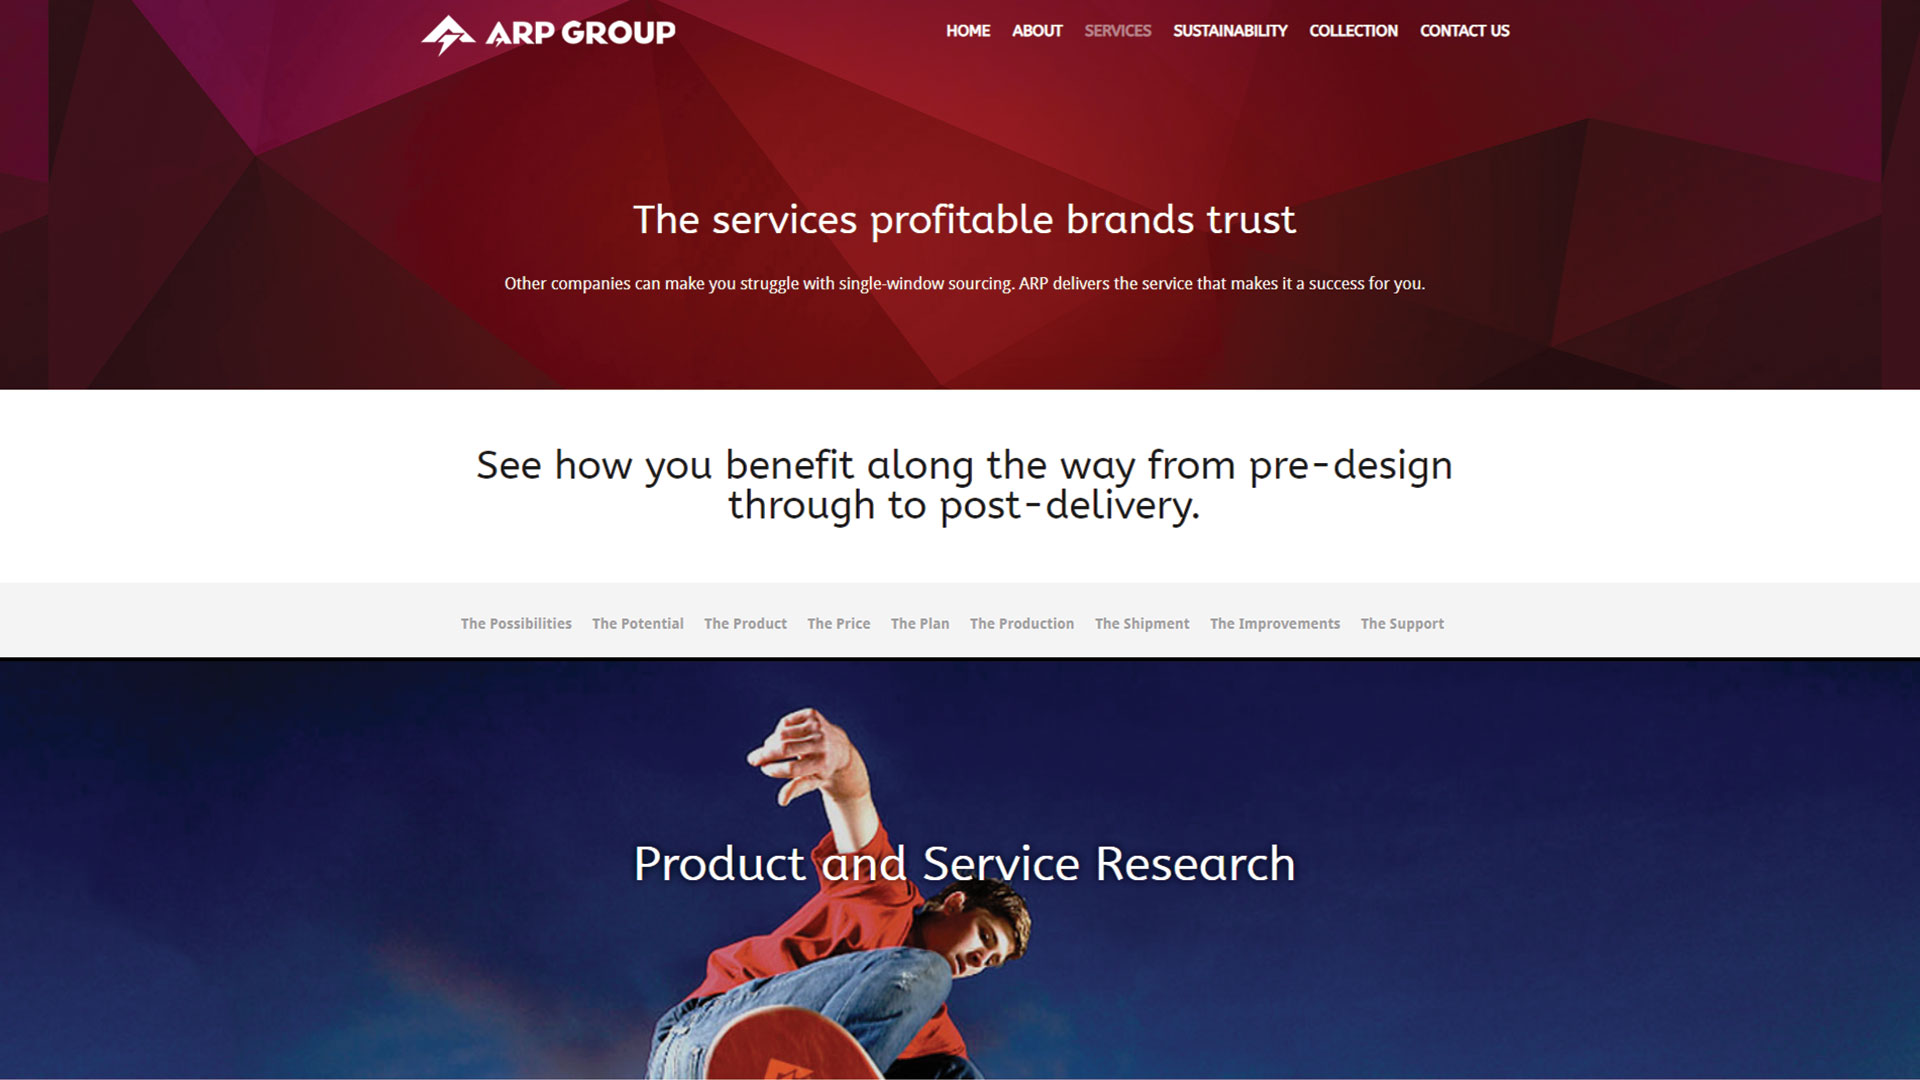 arp-group-Vancouver-web-design-Vancouver-web-development-by-mapleweb-canada-services-red-blue-page-image